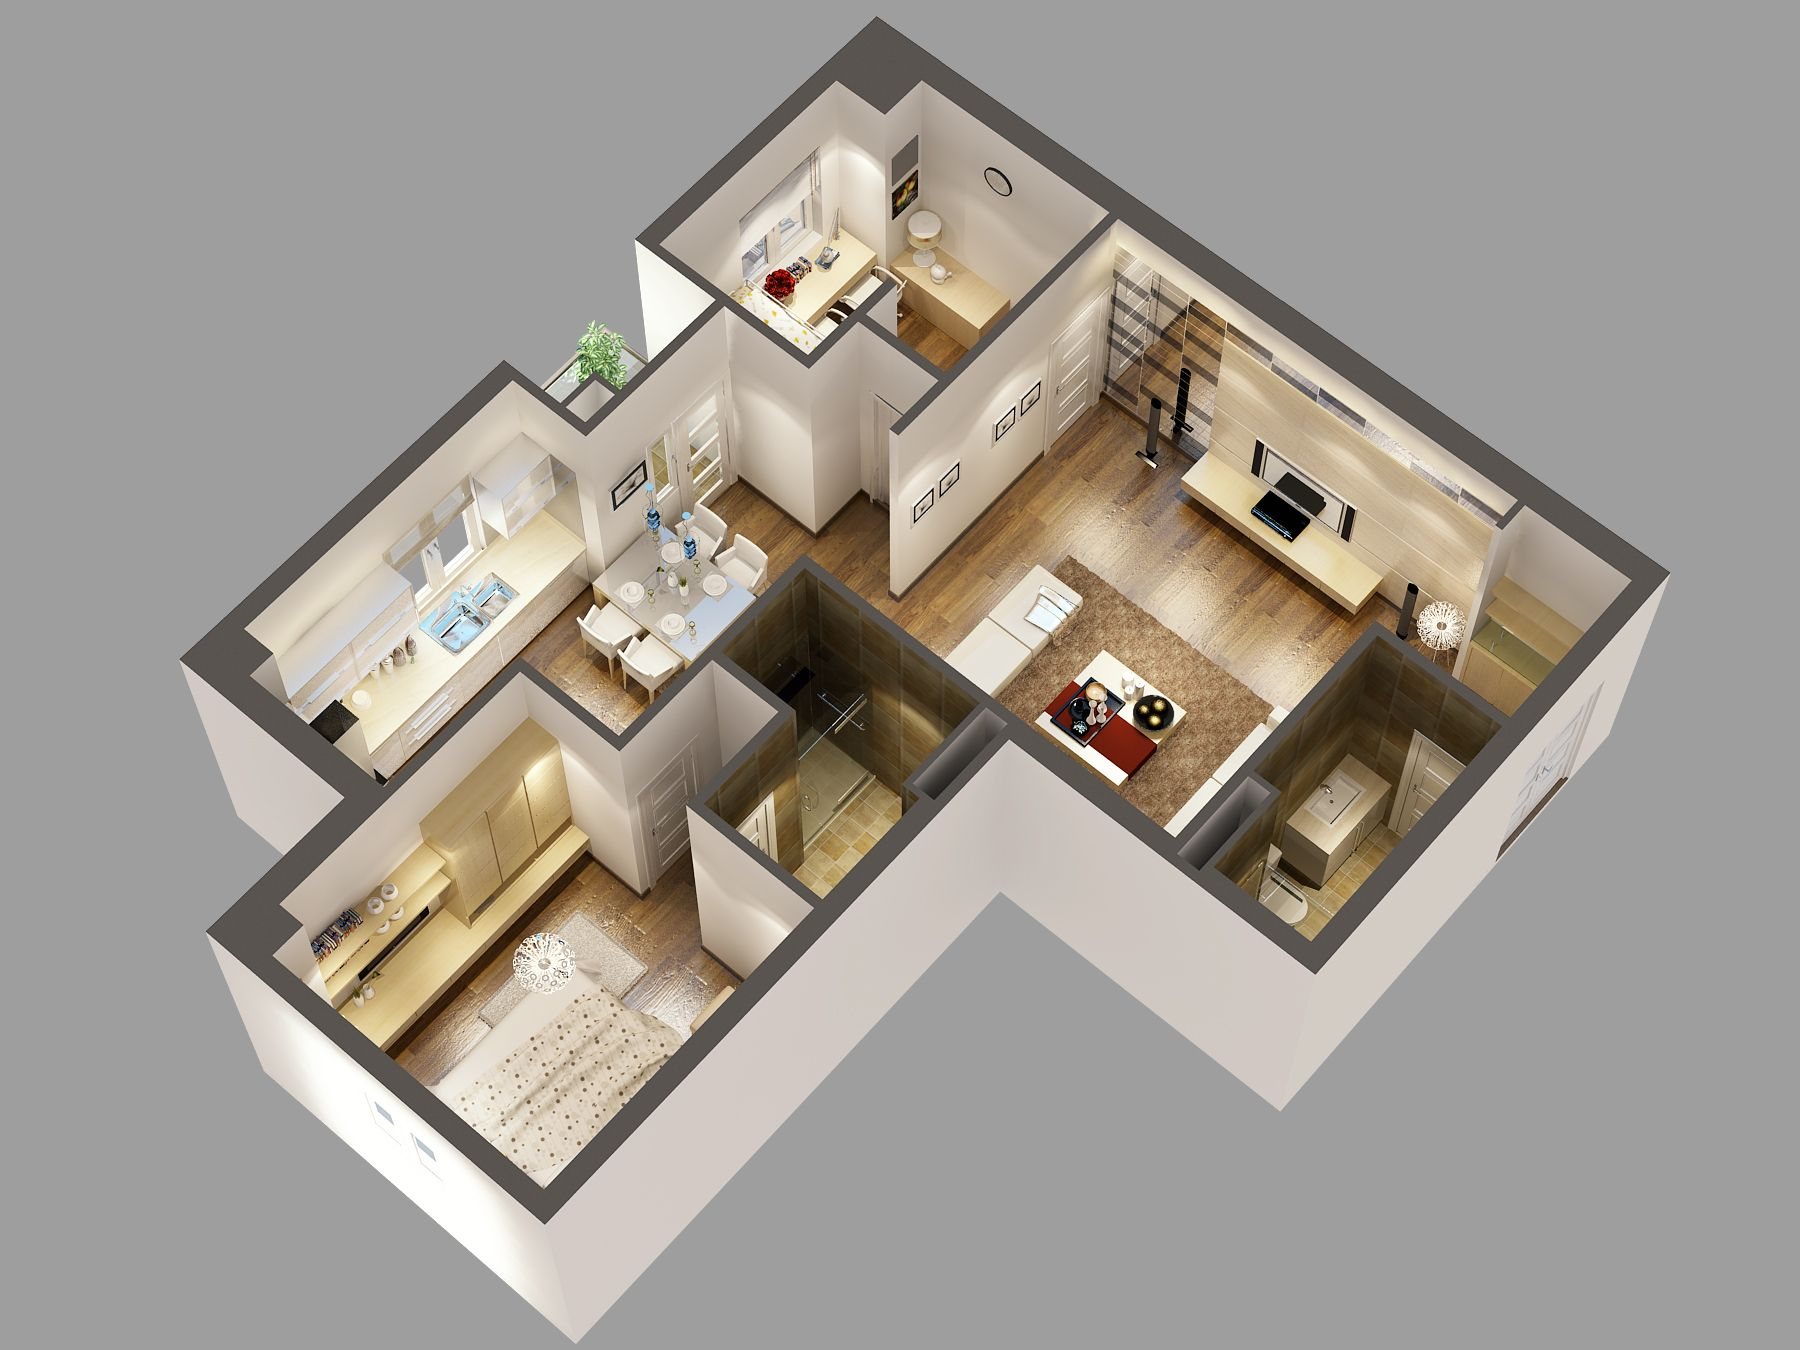 3d Floor Plan Software Free With Awesome Modern Interior Design With Laminate Floooring For 3d Floor